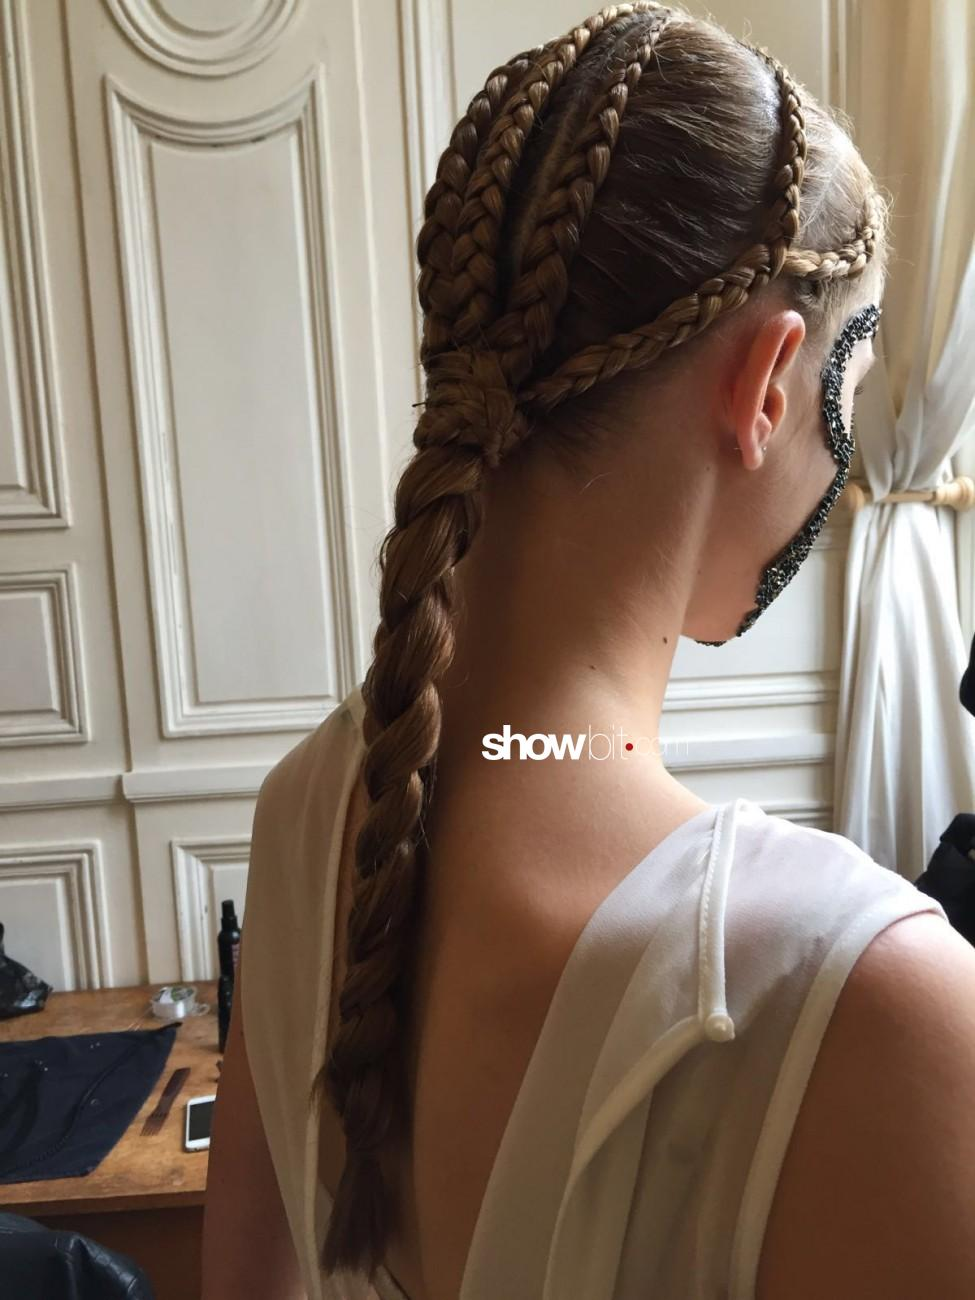 Ludovic Winterstan Haute Couture Preview Fall Winter 2016 - 2017 Braids